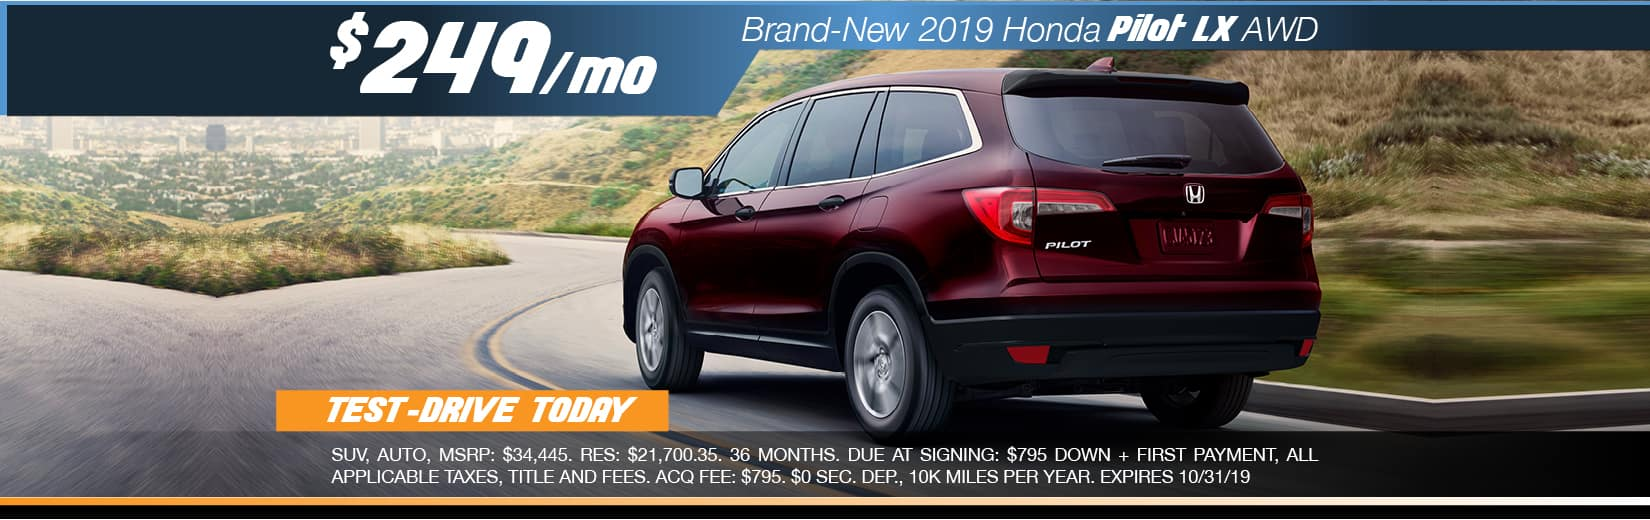 2019 Honda Pilot LX FWD Lease for $249 a month for 36 months